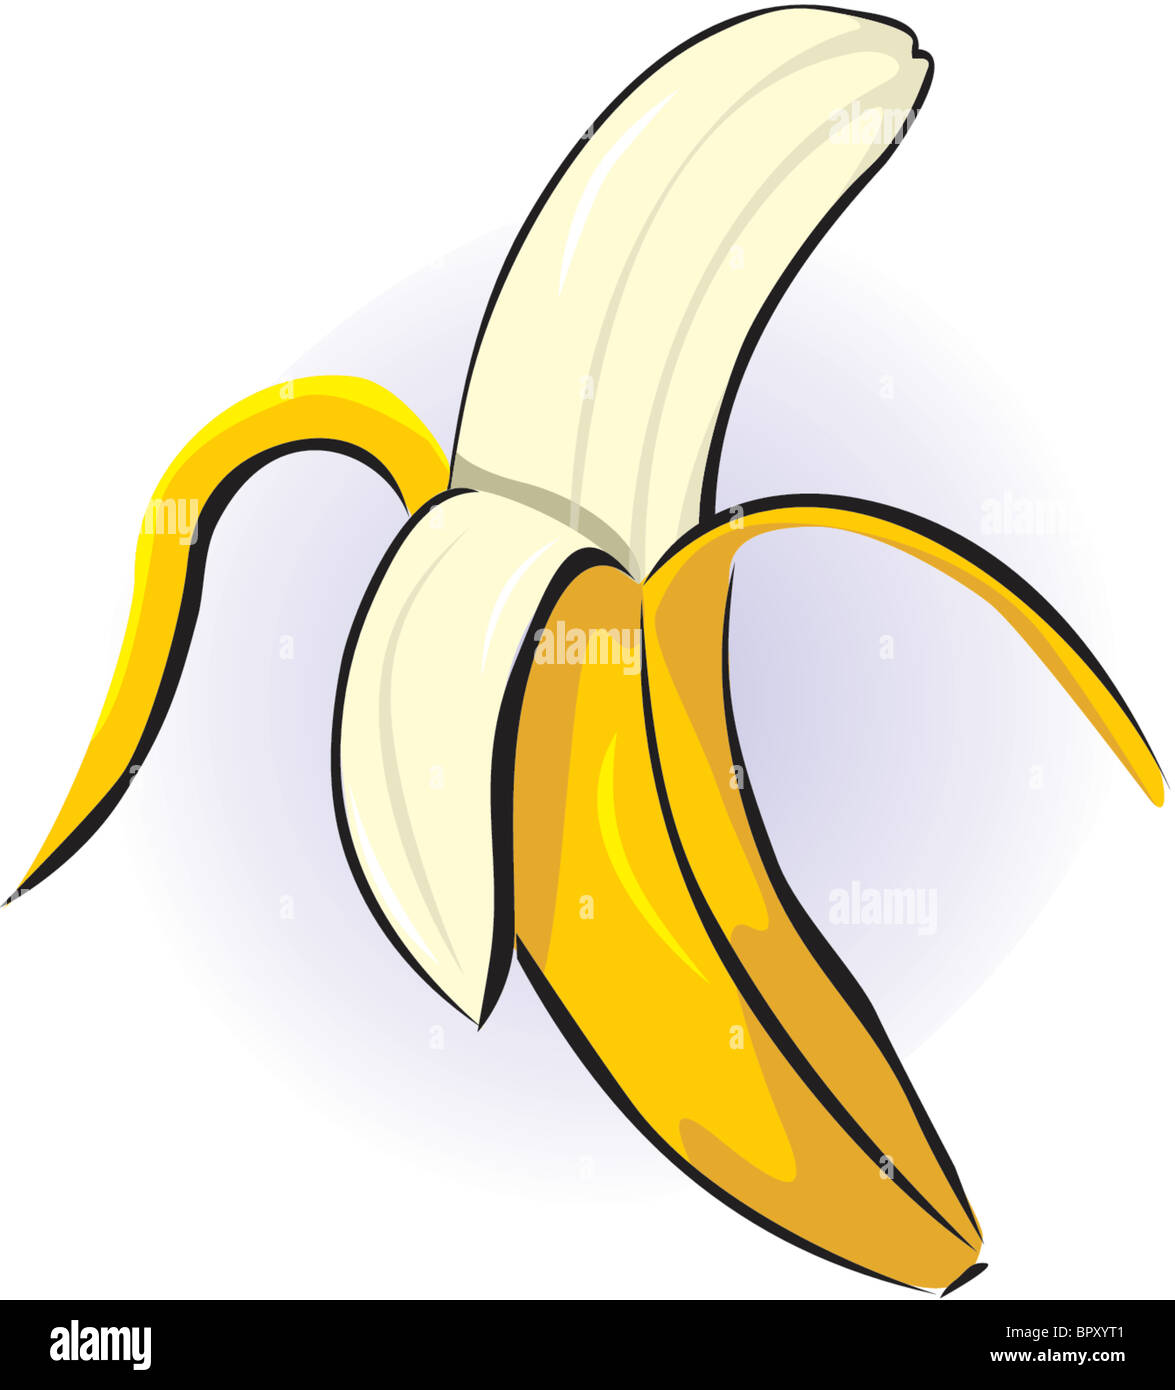 Drawing Of A Peeled Banana